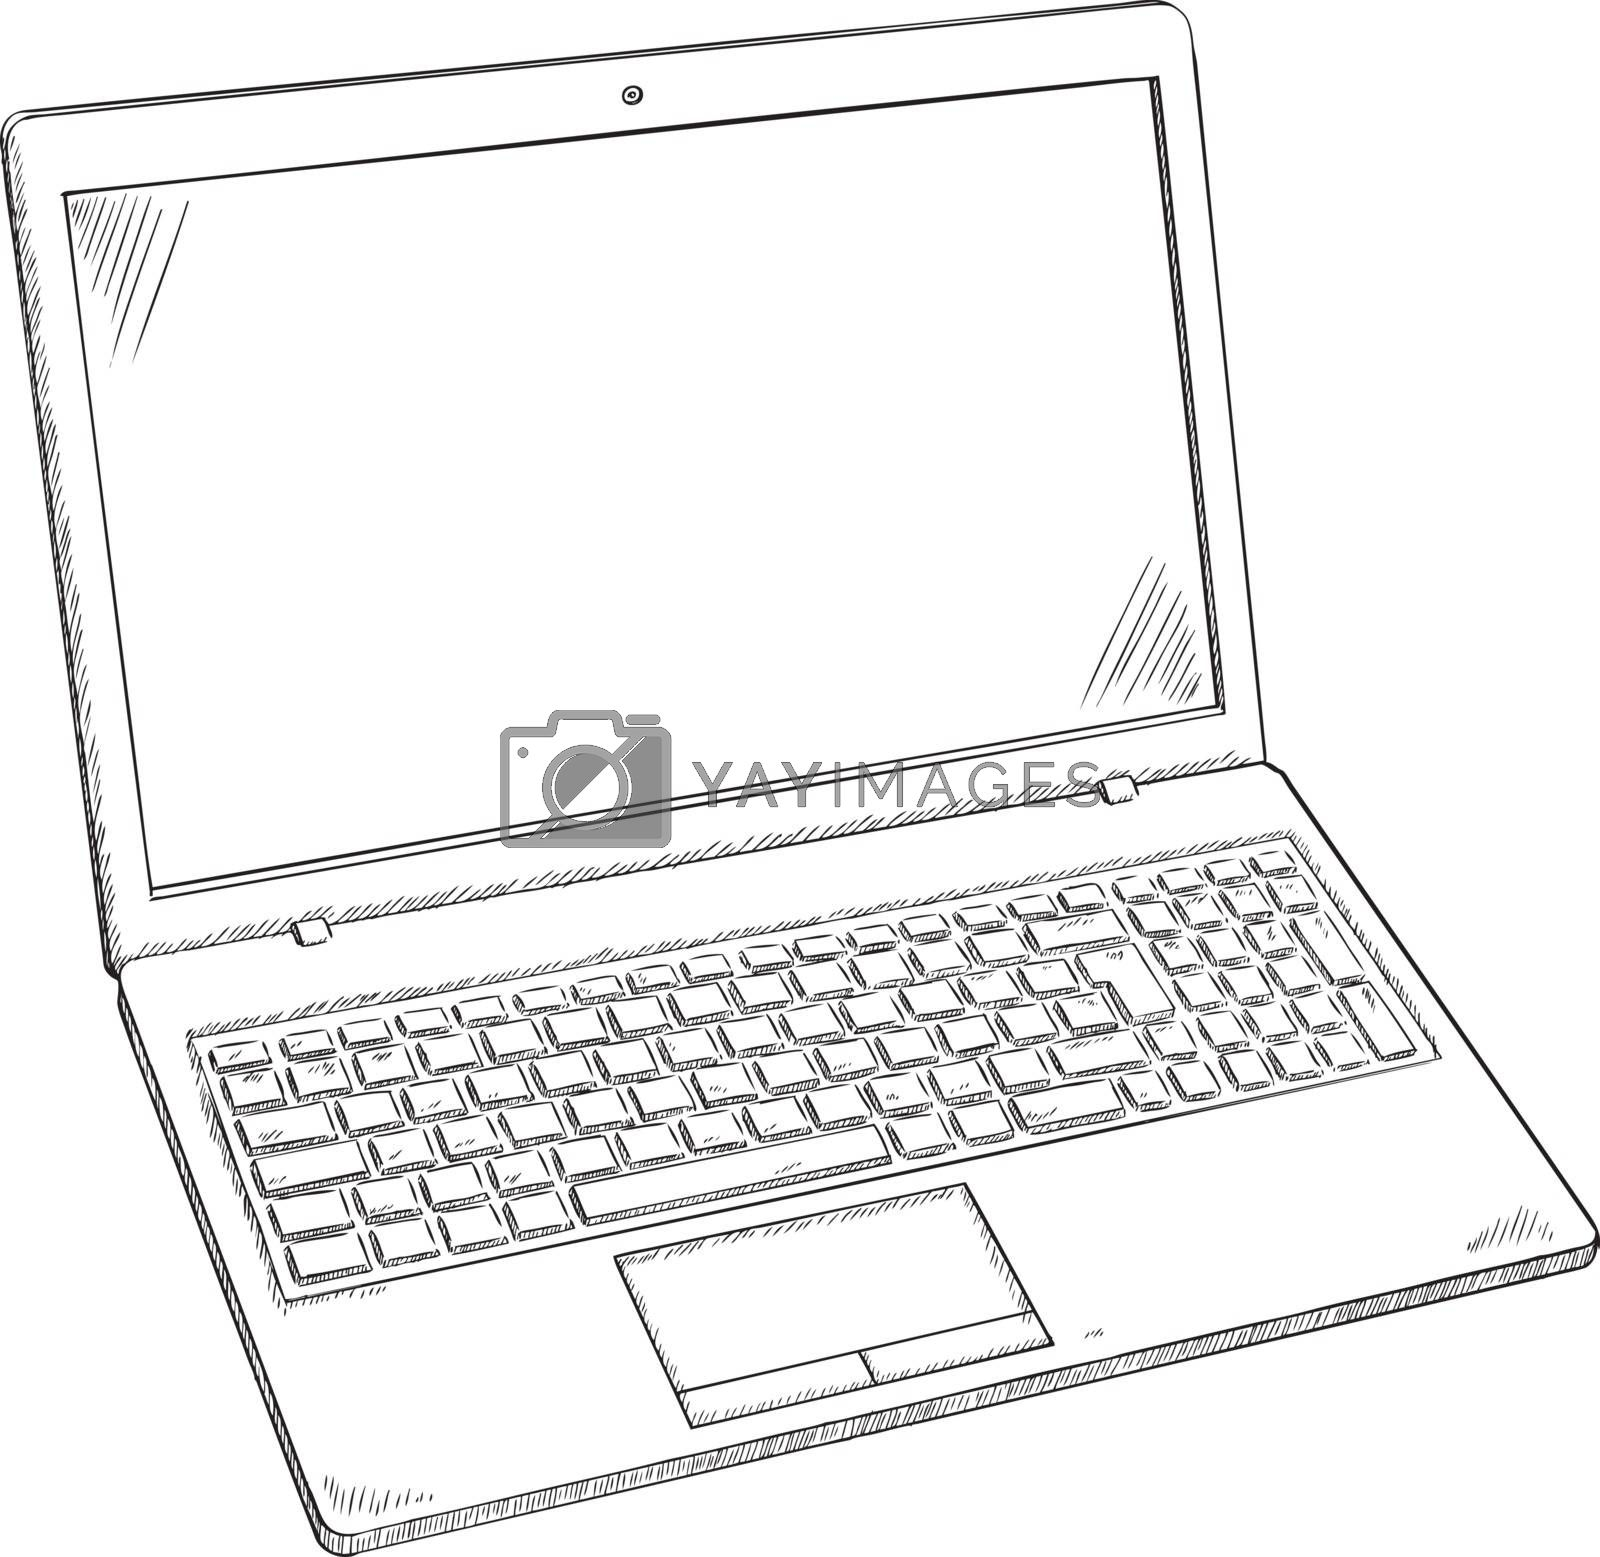 Royalty free image of llustration of Laptop PC - sketch style doodle. by Galeartstudio